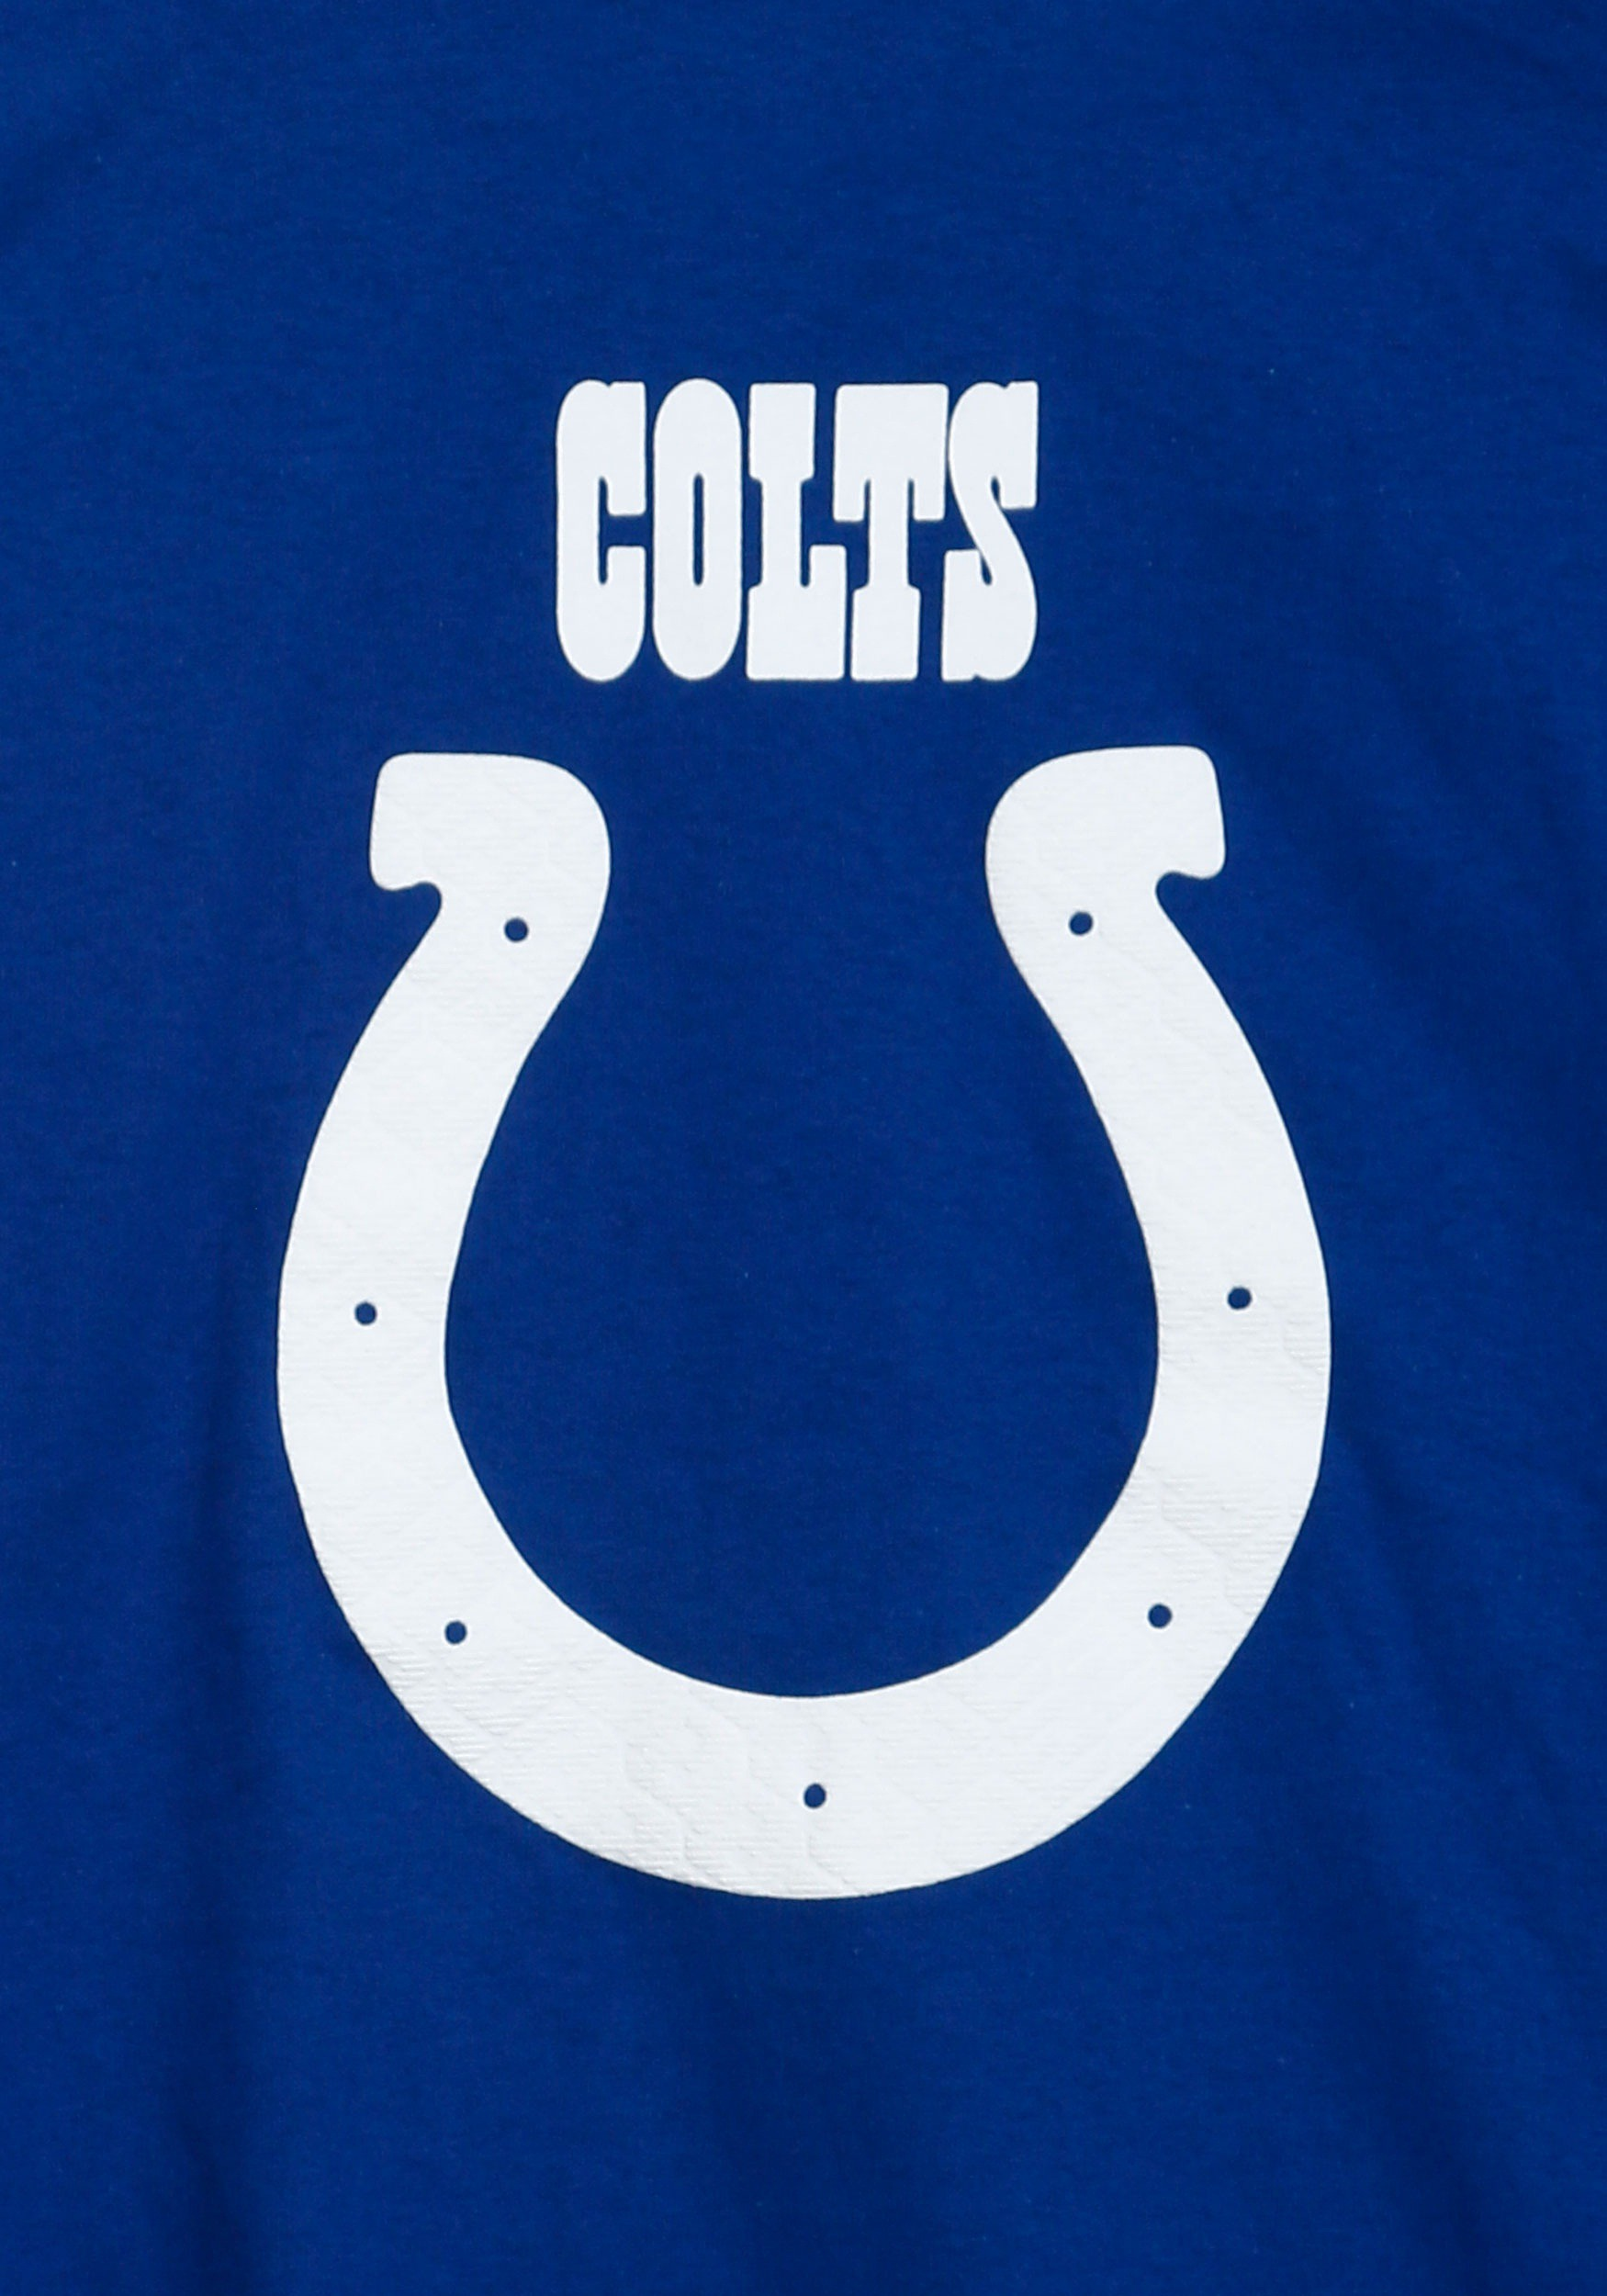 Indianapolis Colts Critical Victory T-Shirt